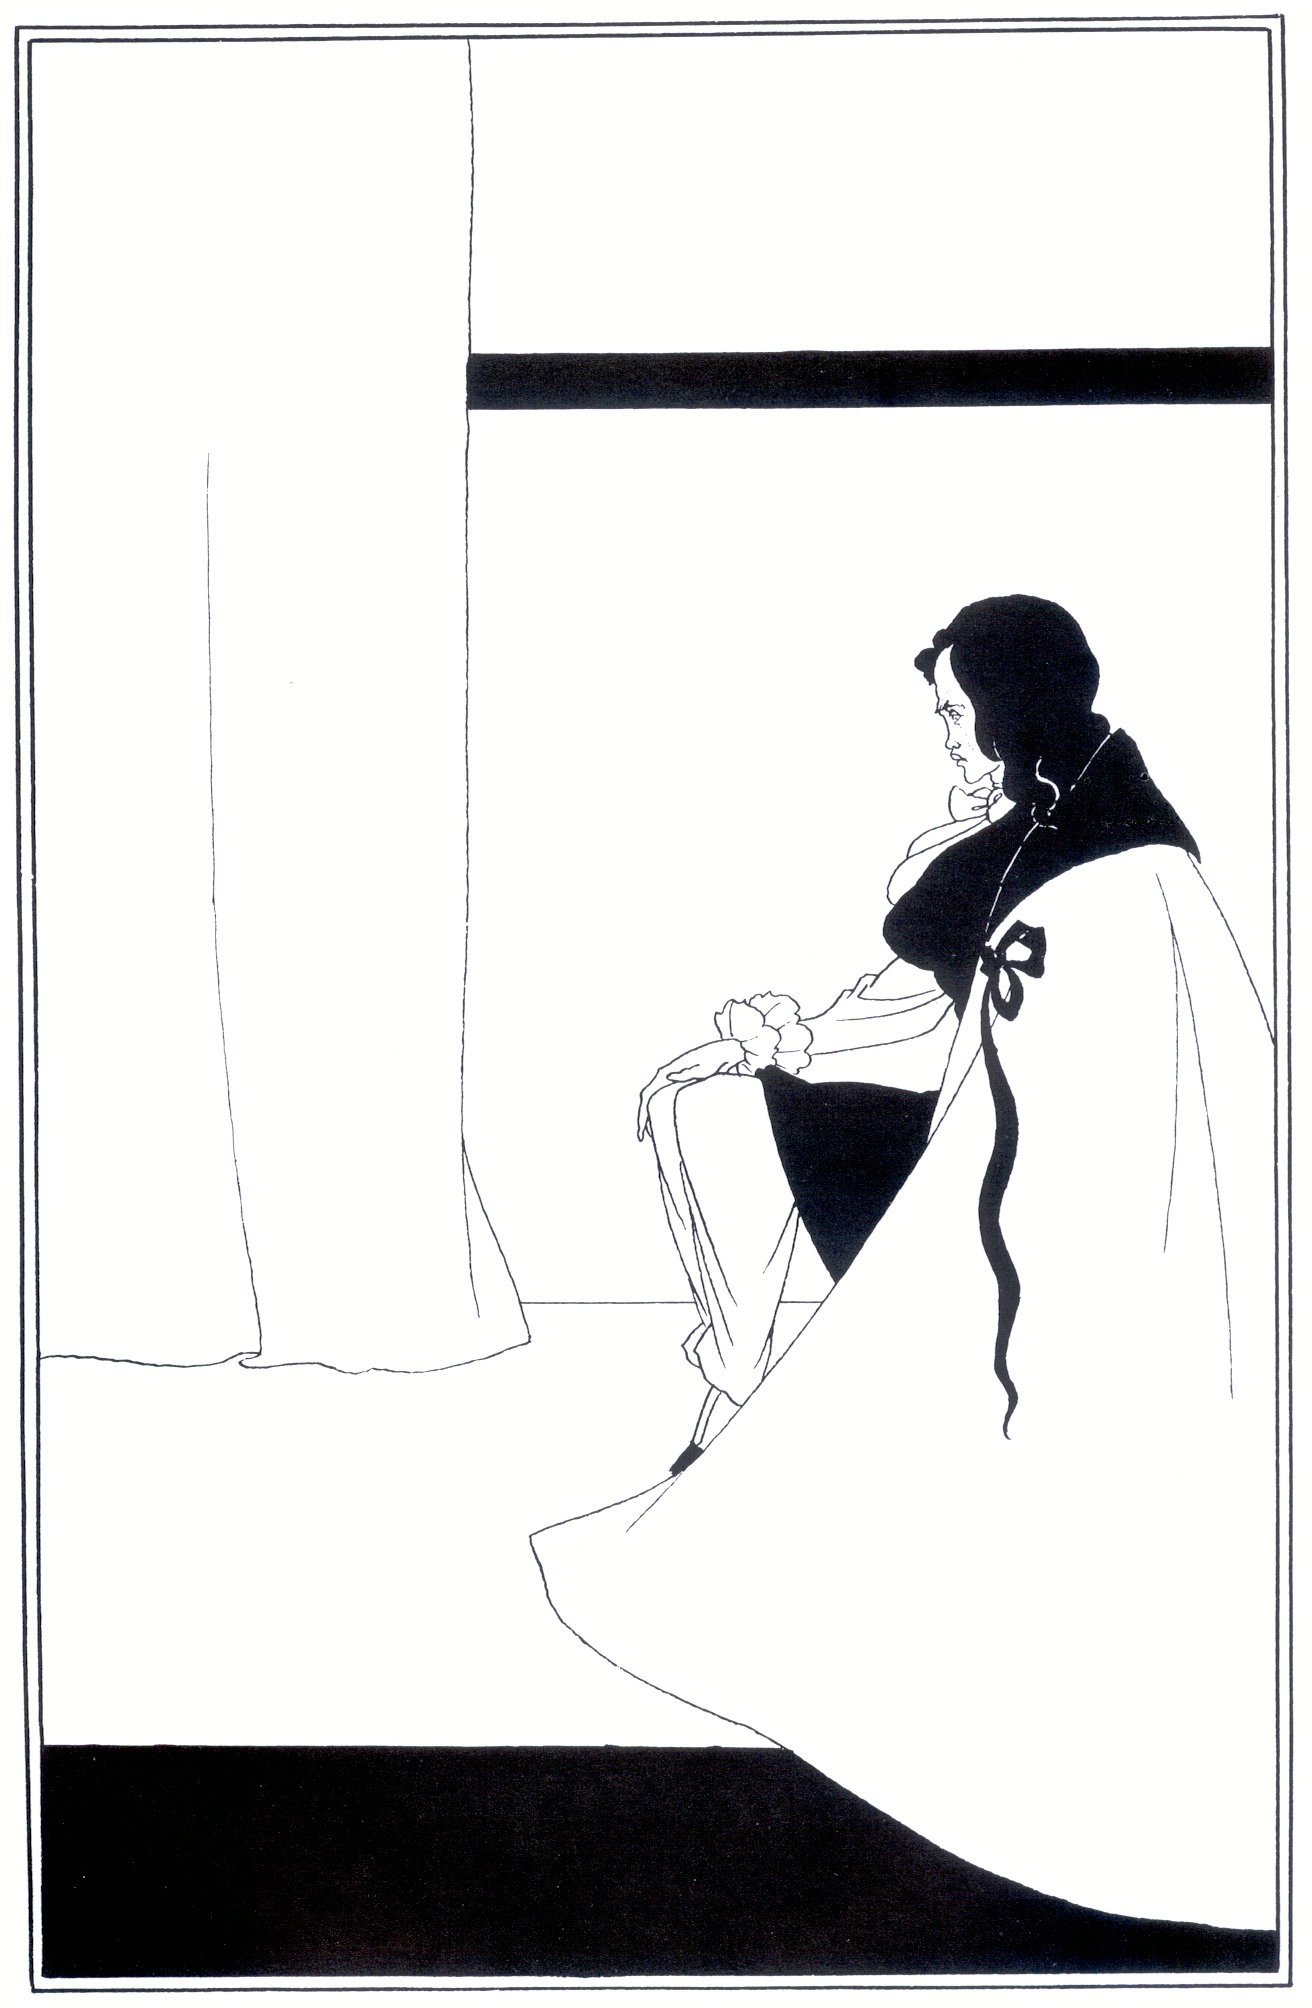 aubrey_beardsley_-_edgar_poe The Fall of the house of Usher